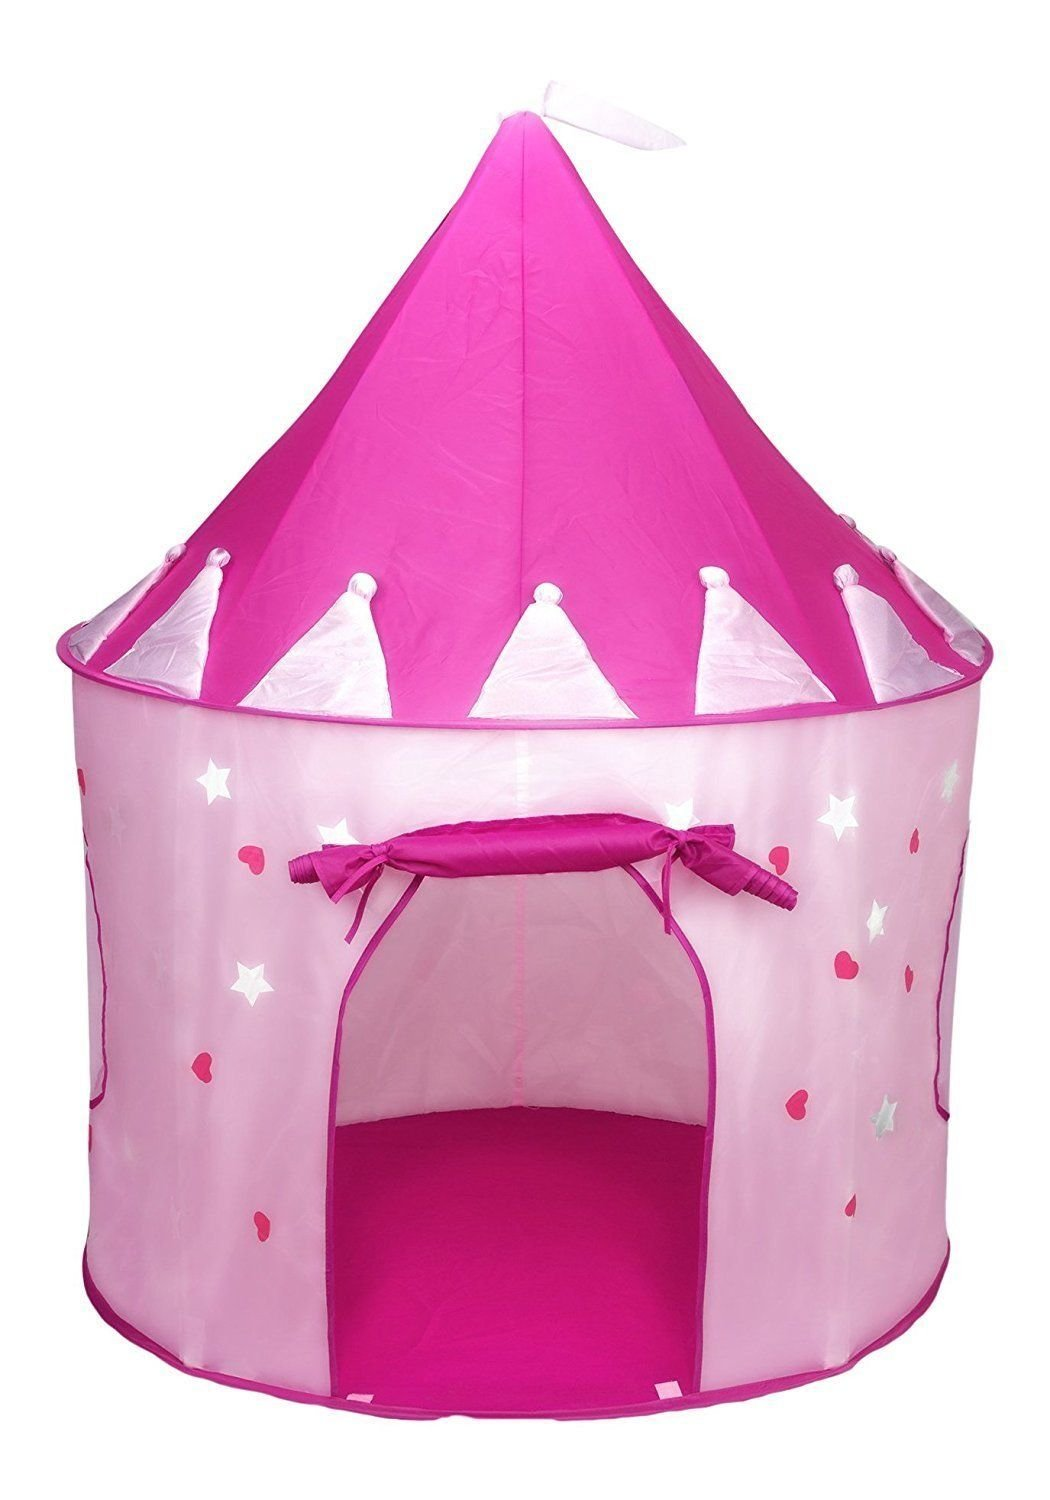 プリンセスCastle Play Tent with Glow in the Dark星、Folds Into a Carryingケース B06XJZ6Z8G